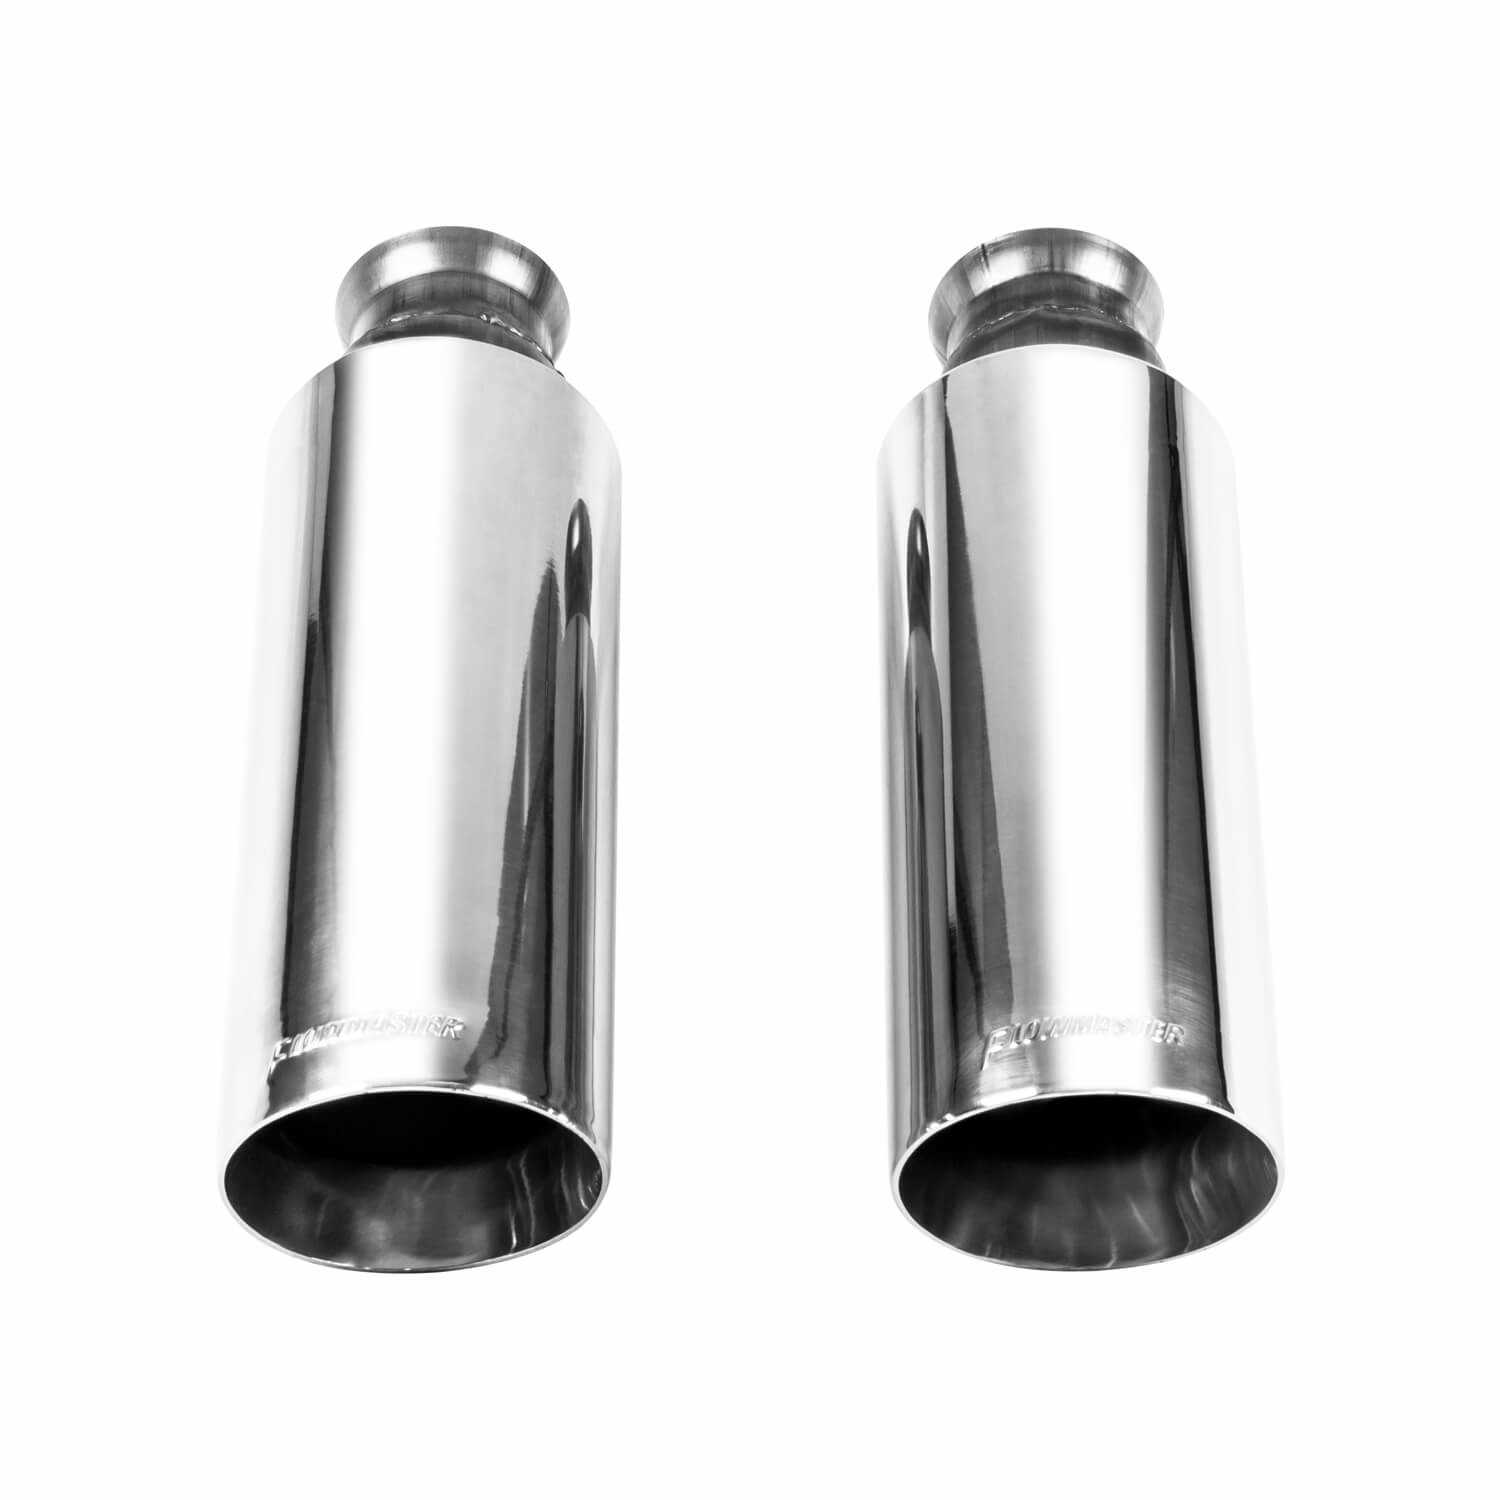 15356 Flowmaster Stainless Steel Exhaust Tip